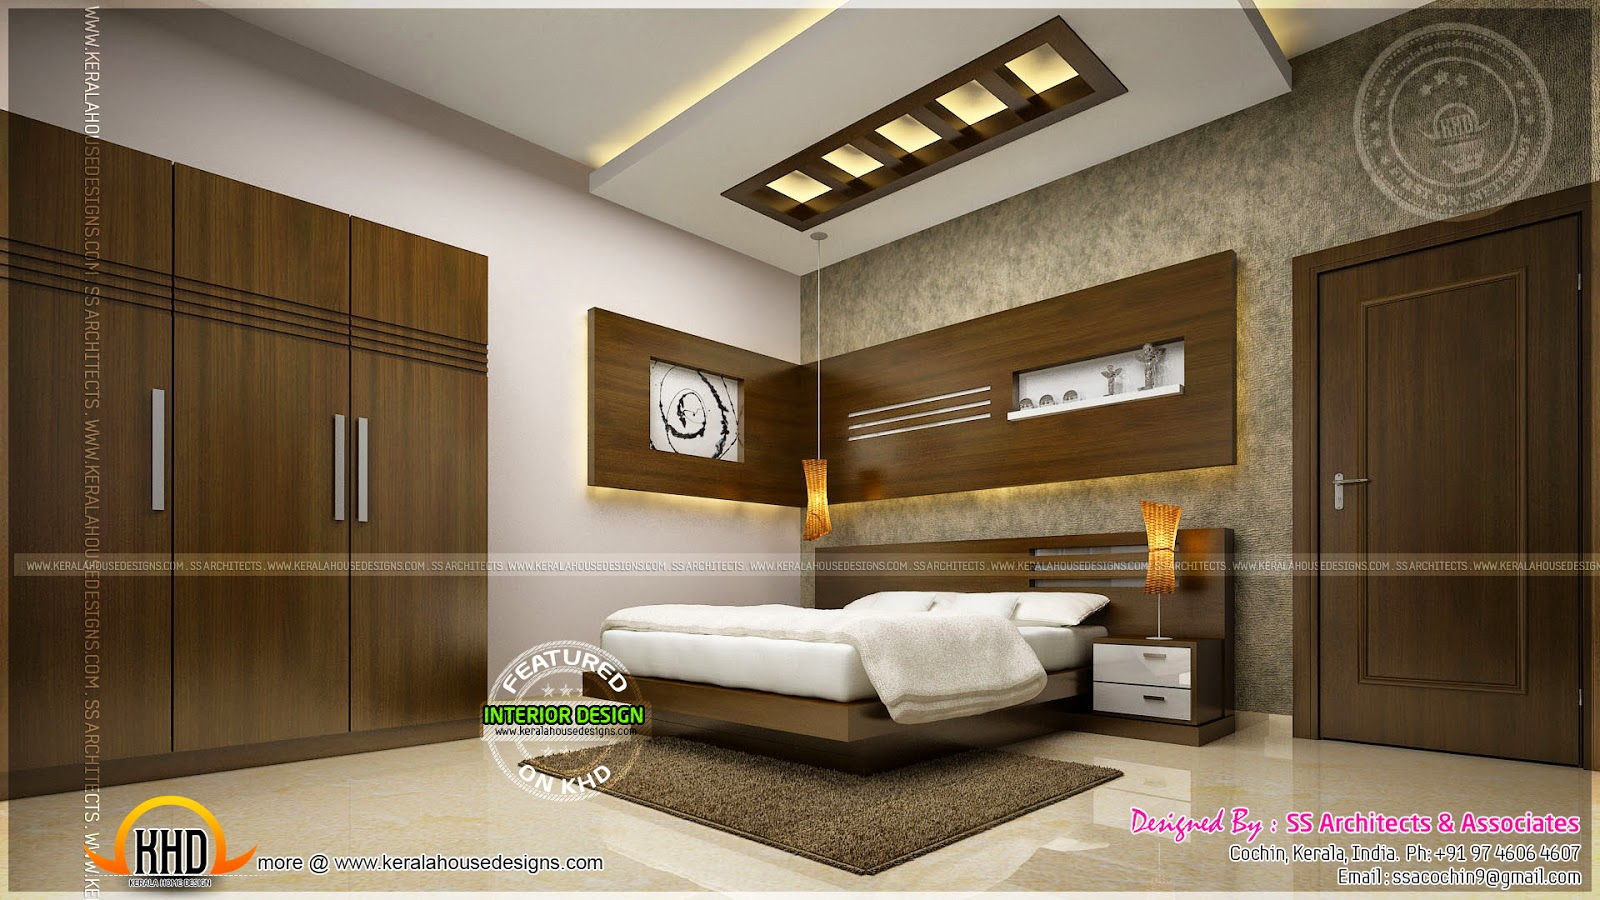 Awesome master bedroom interior kerala home design and for Master bedroom interior design images